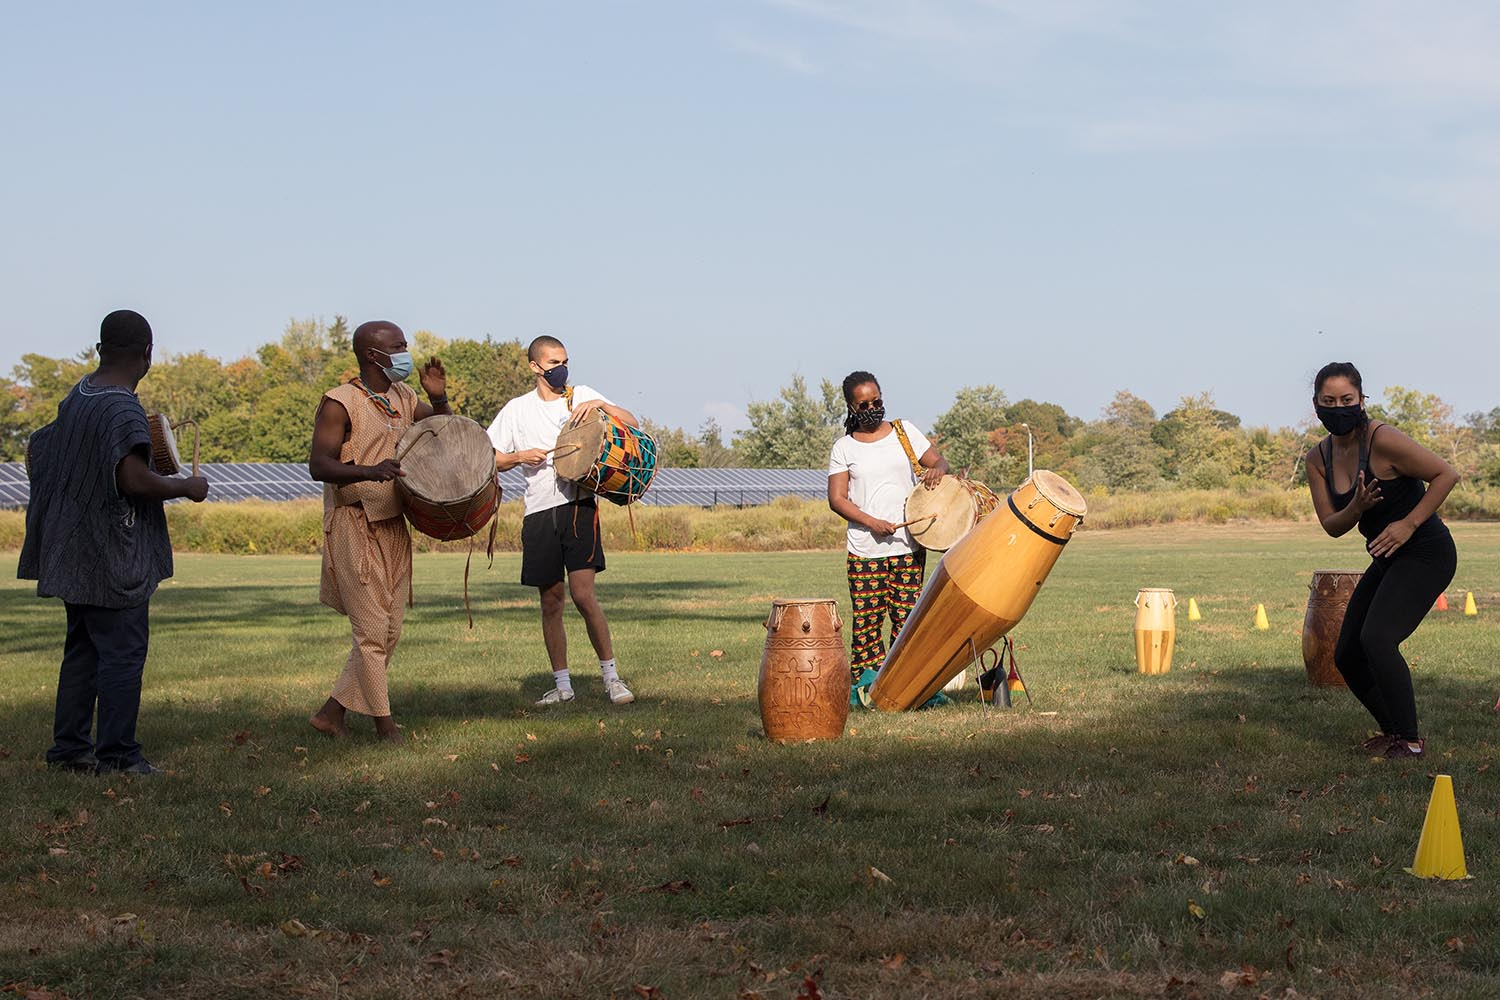 African Studies and Akwaaba Wes invited members of the Wesleyan community to a West African Music and Dance performance on Sept. 25 on the Rugby Practice Field.